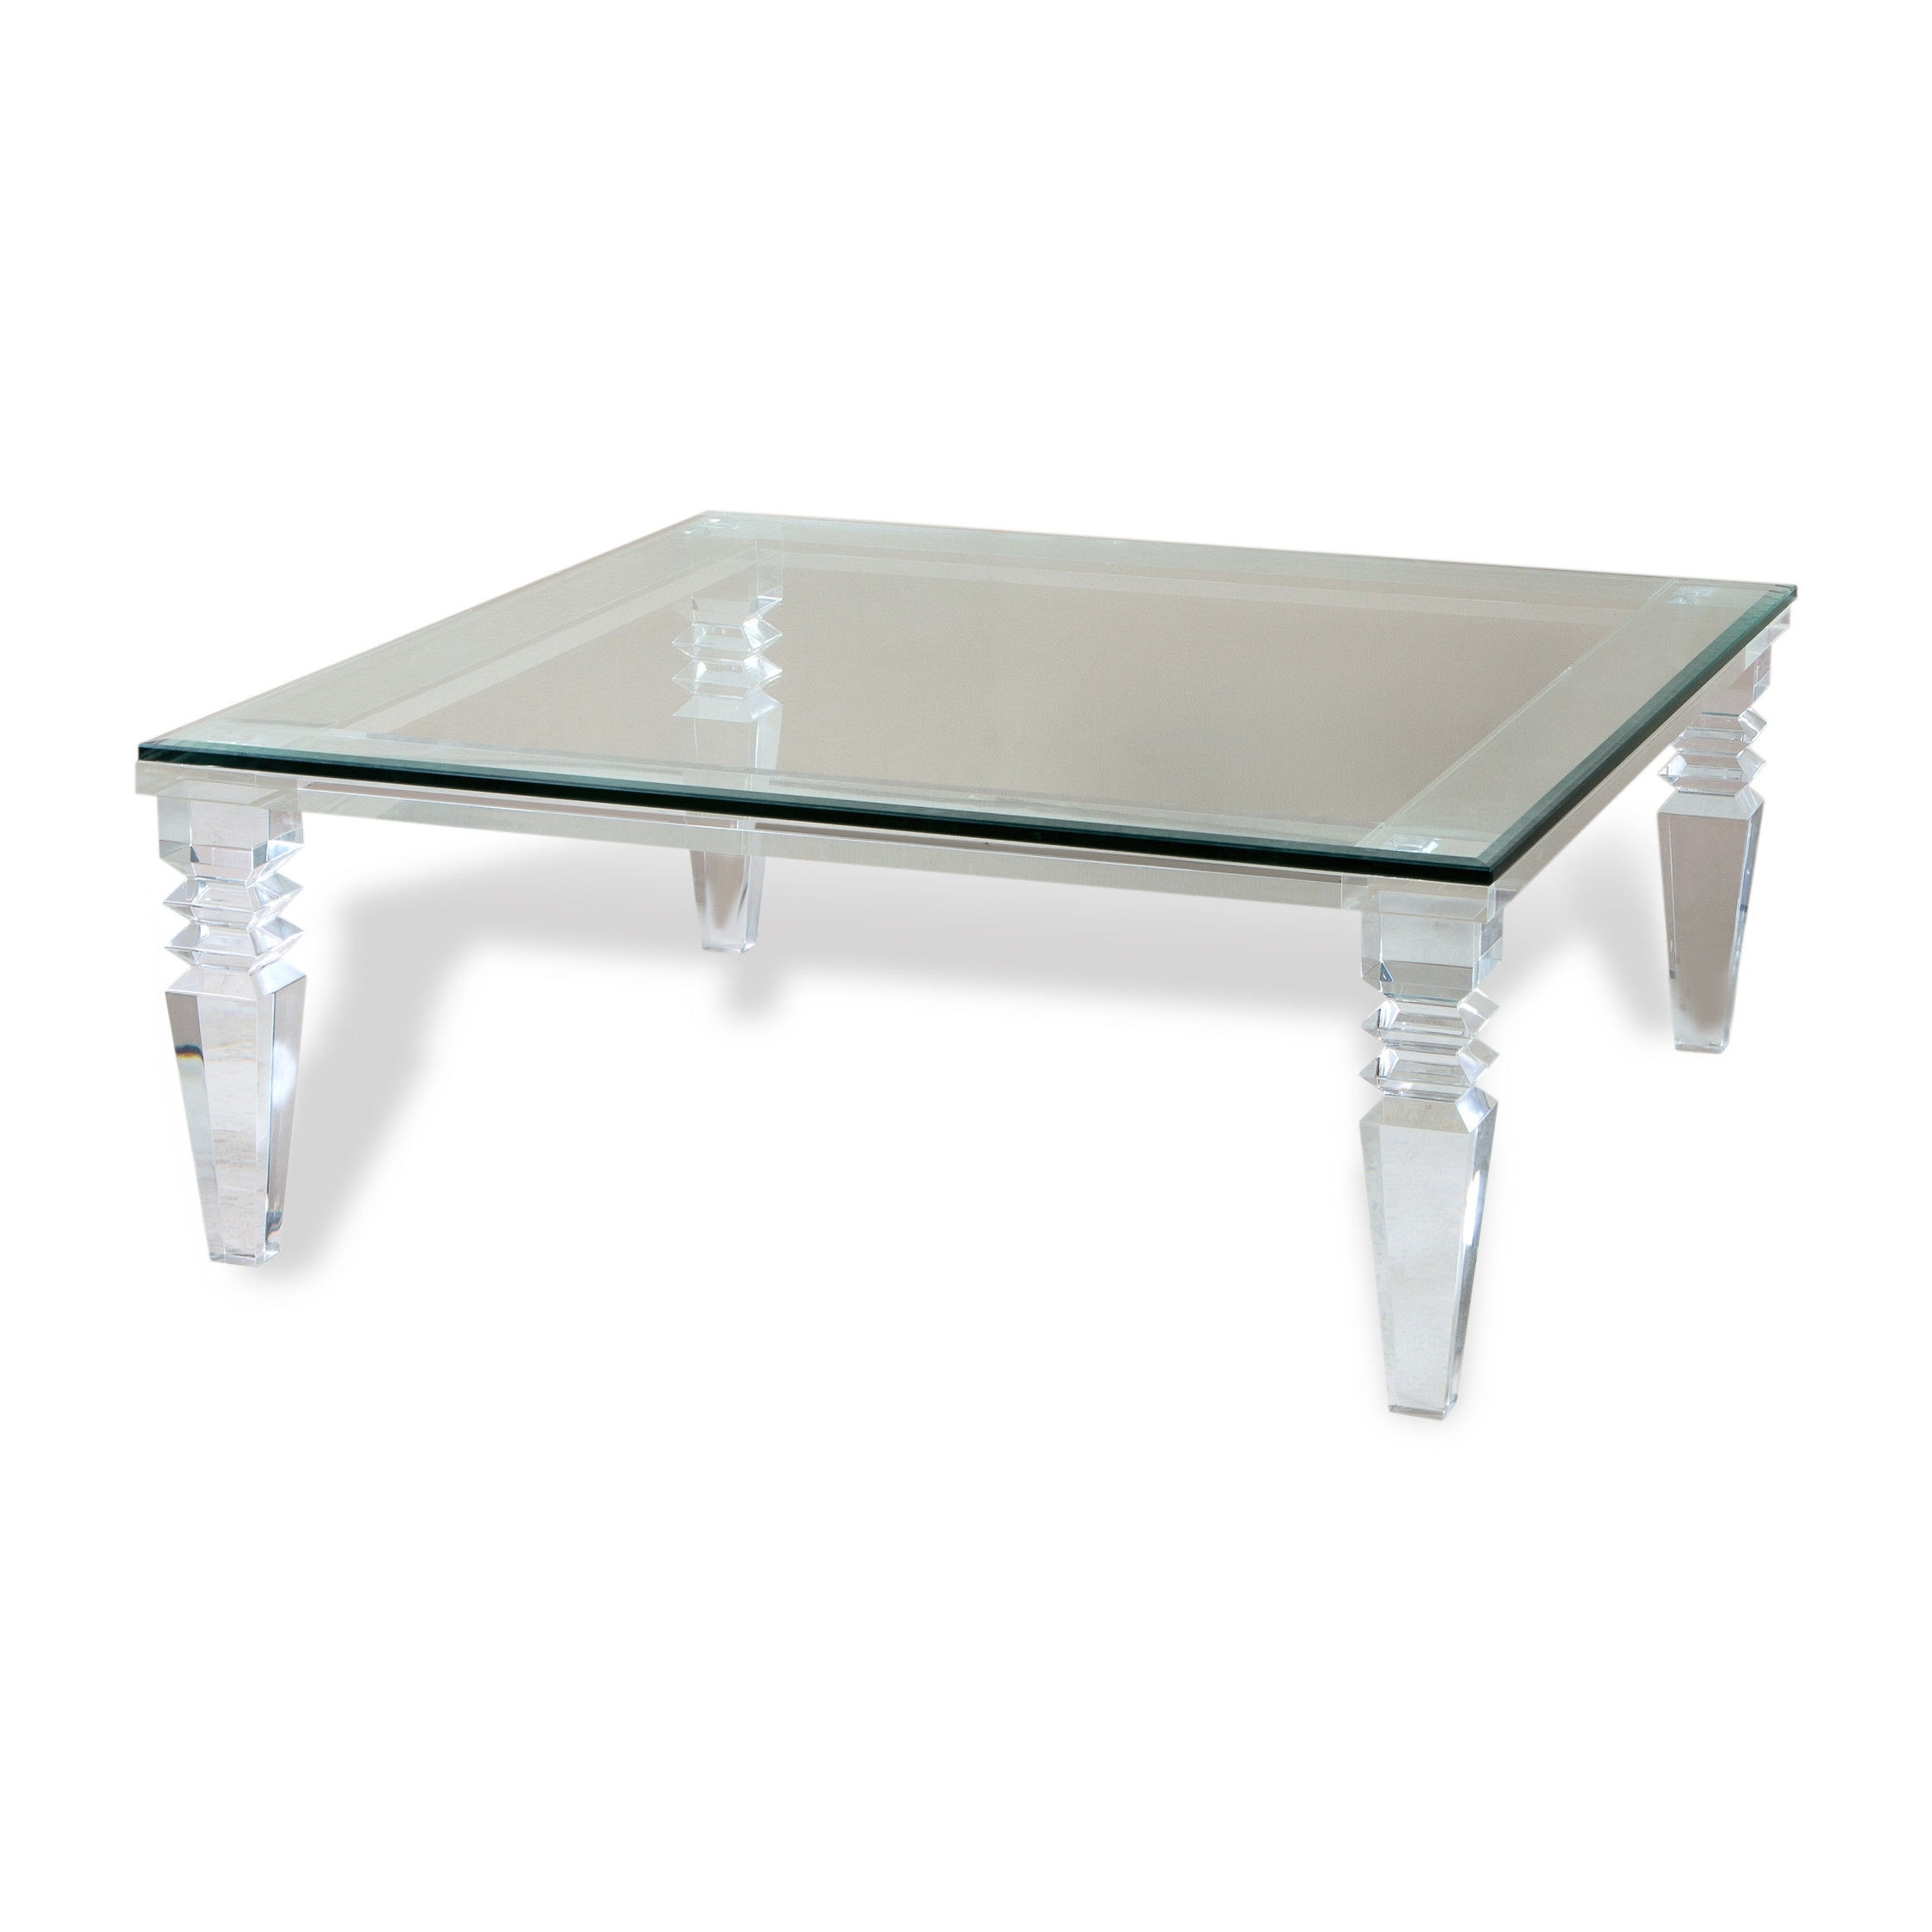 Acrylic Coffee Table For Sale Lovely Furniture Clear Glass Coffee With Regard To Most Recently Released Peekaboo Acrylic Tall Coffee Tables (View 11 of 20)